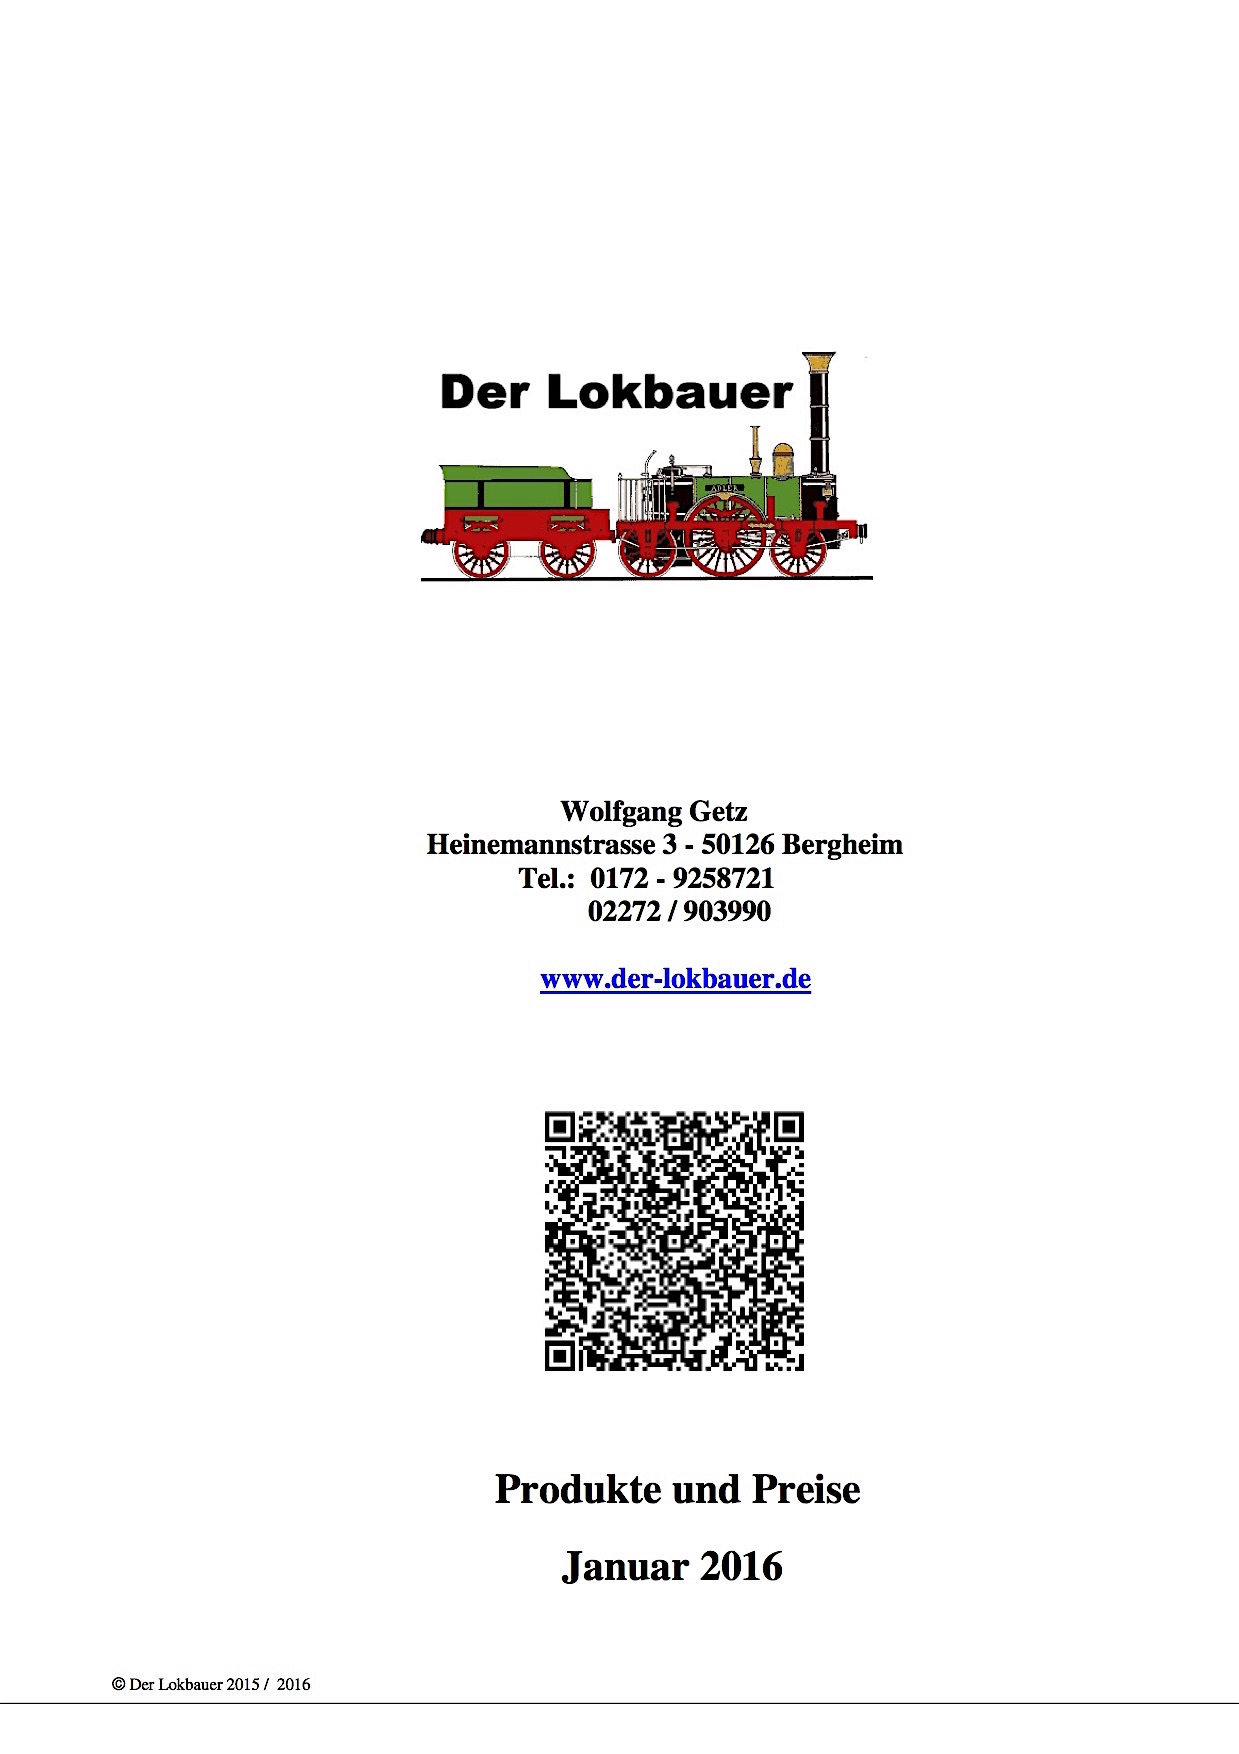 Der Lokbauer Katalog (Catalogue) 2016